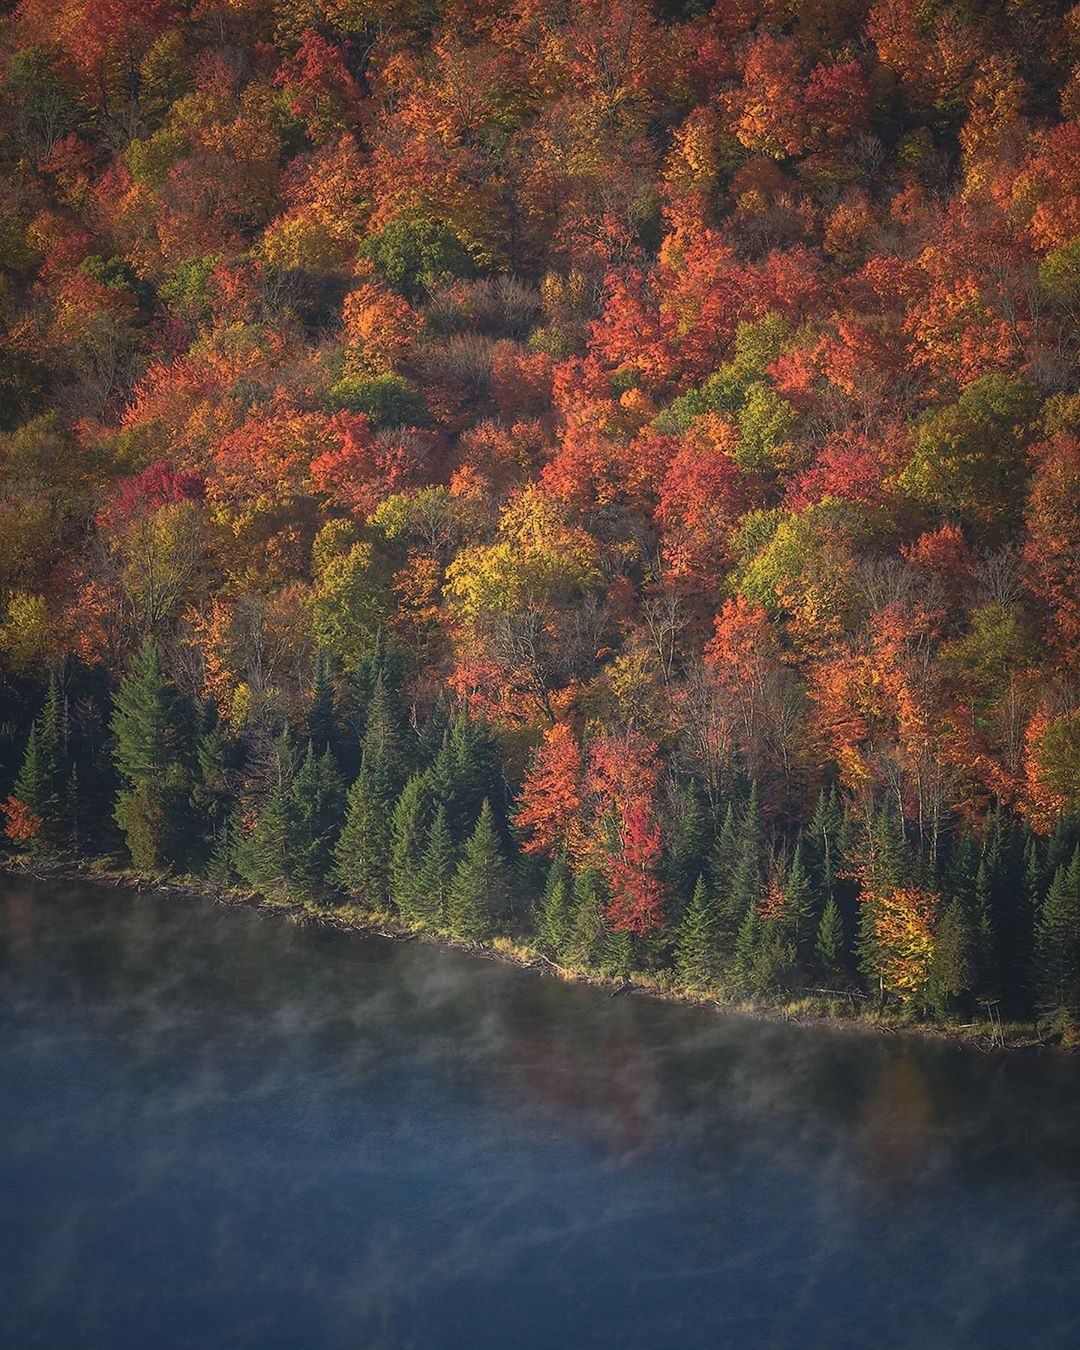 misty lake with autumn red and green trees